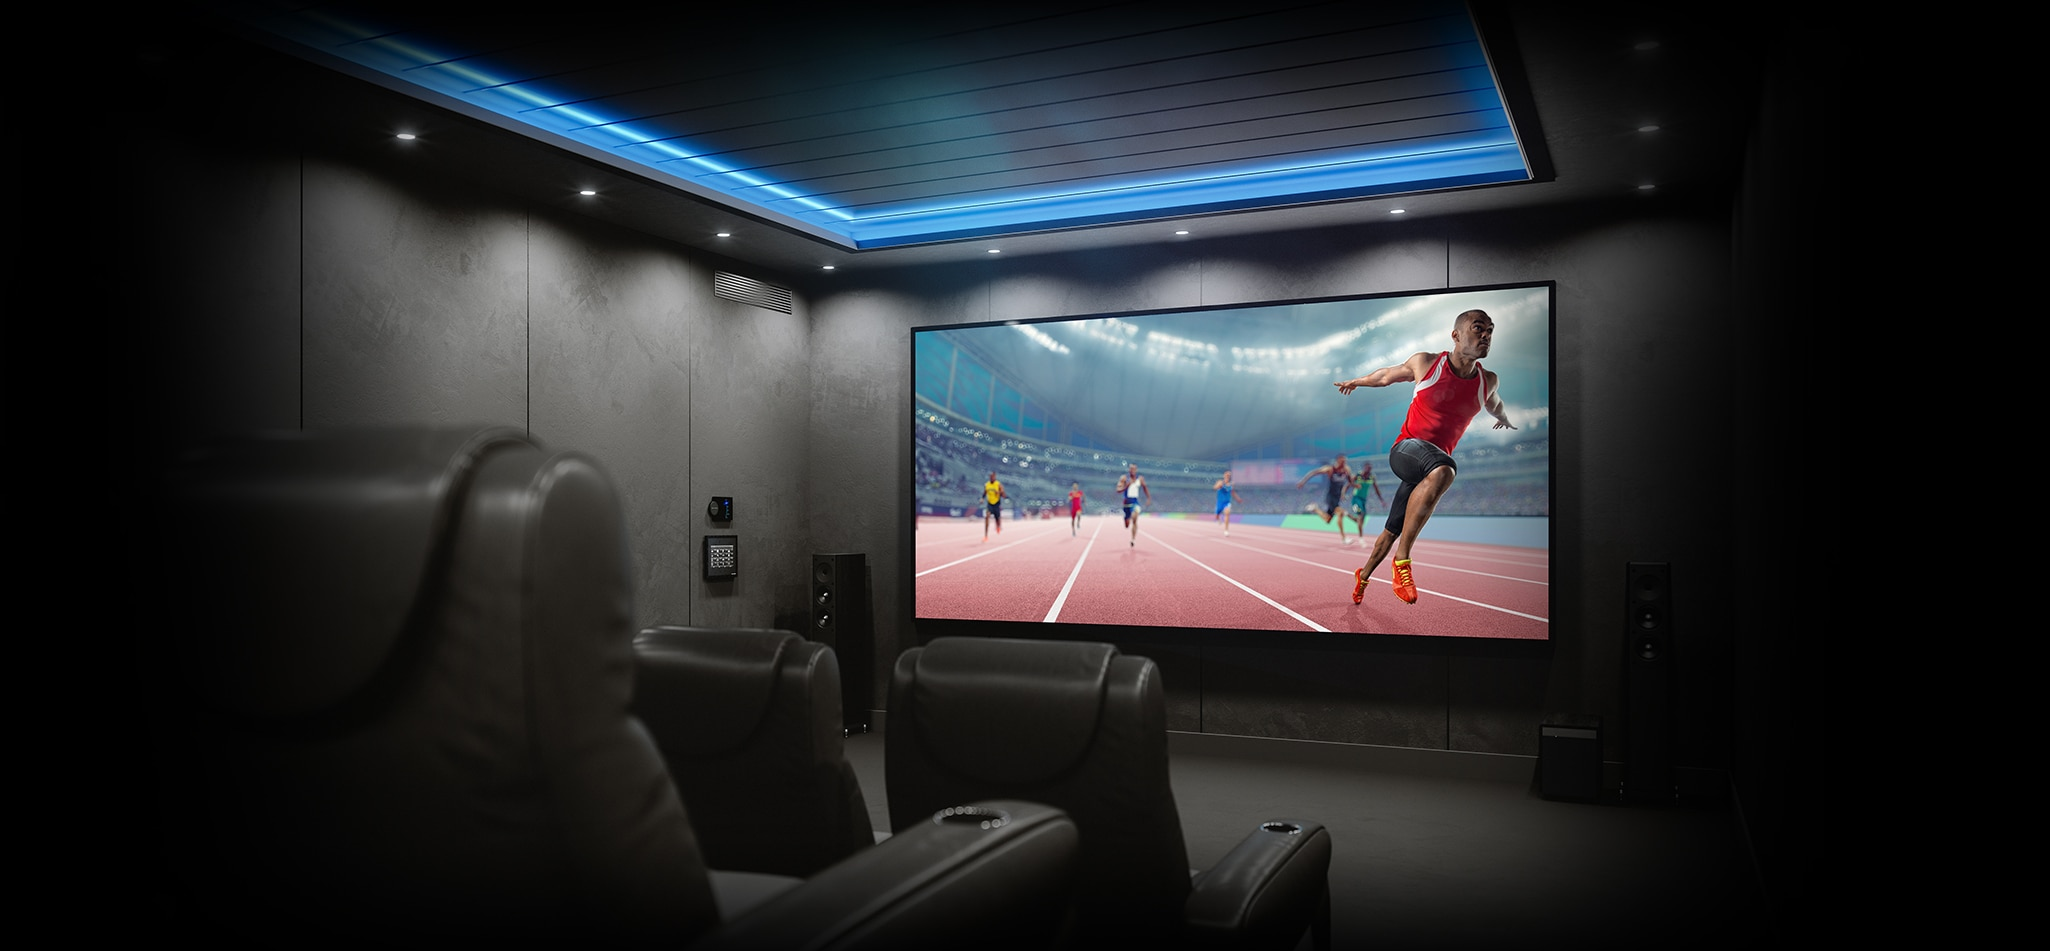 Image showing a home cinema with a projector showing a track race.